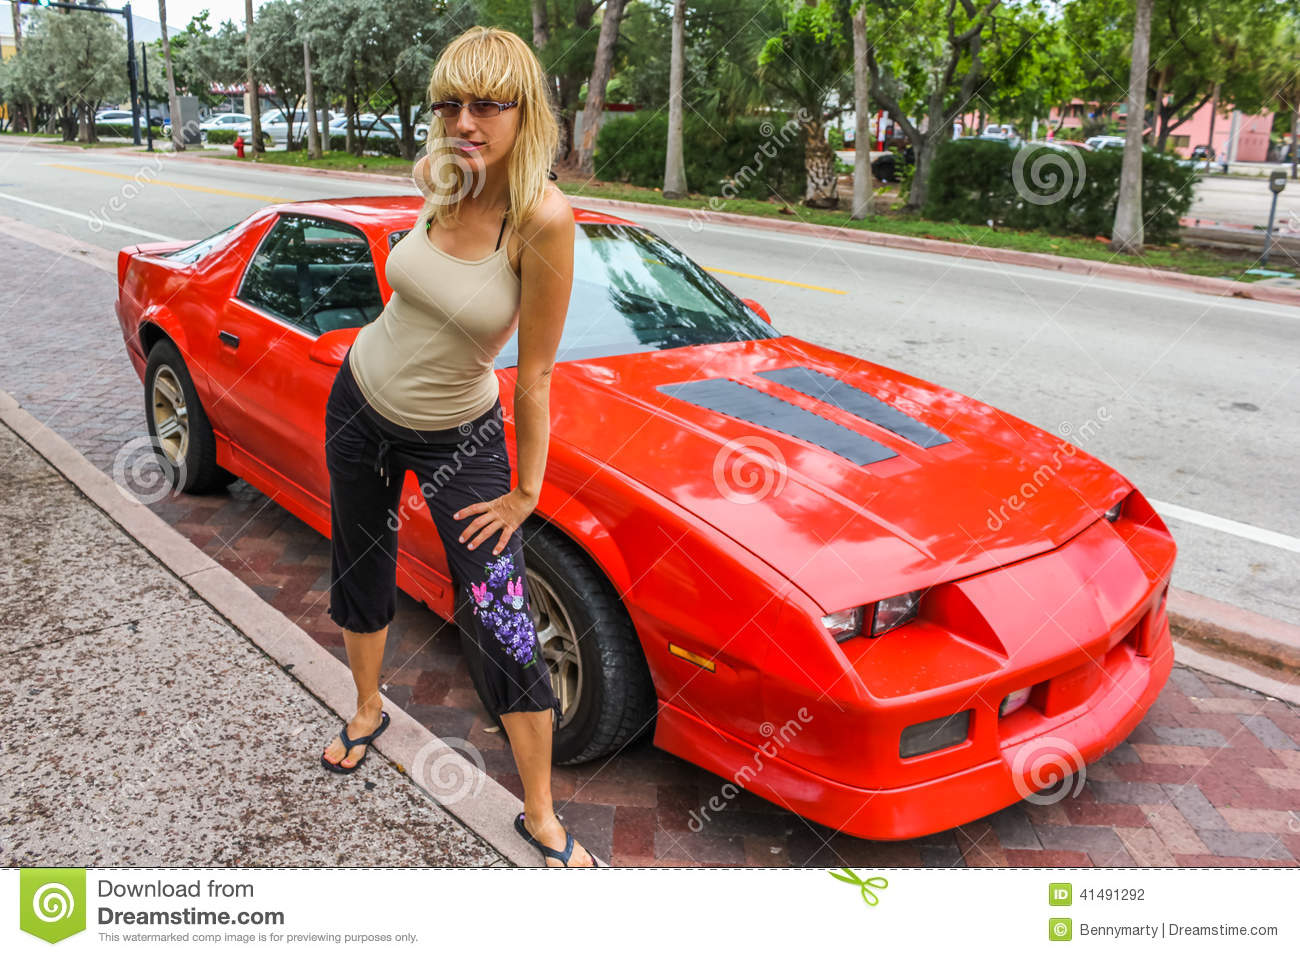 Nude girl with sports car valuable